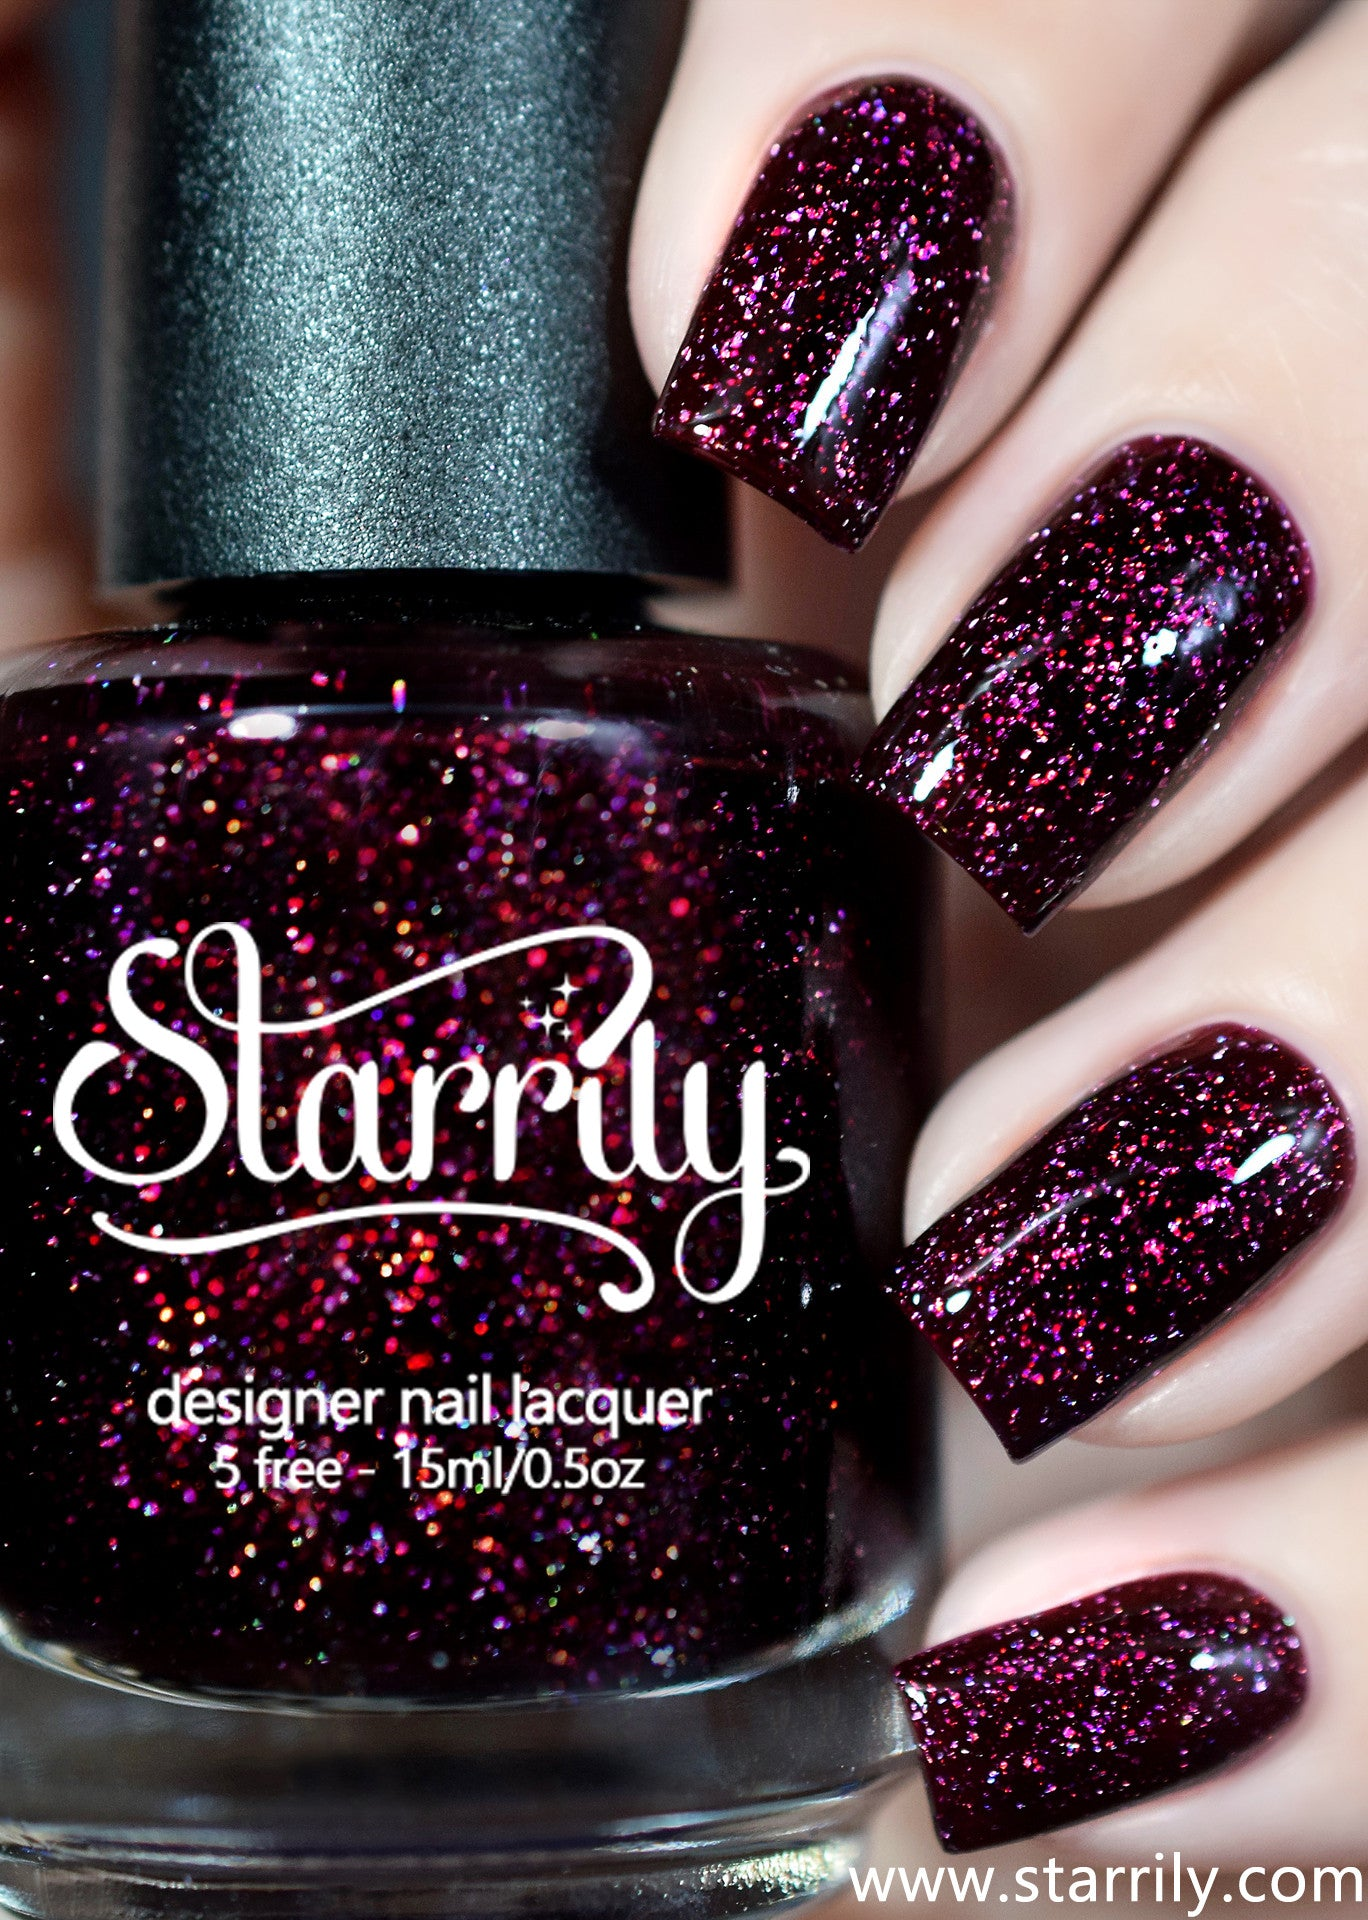 Starrily Oxytocin - Dark Red Holographic Flake Nail Polish - 15 ml